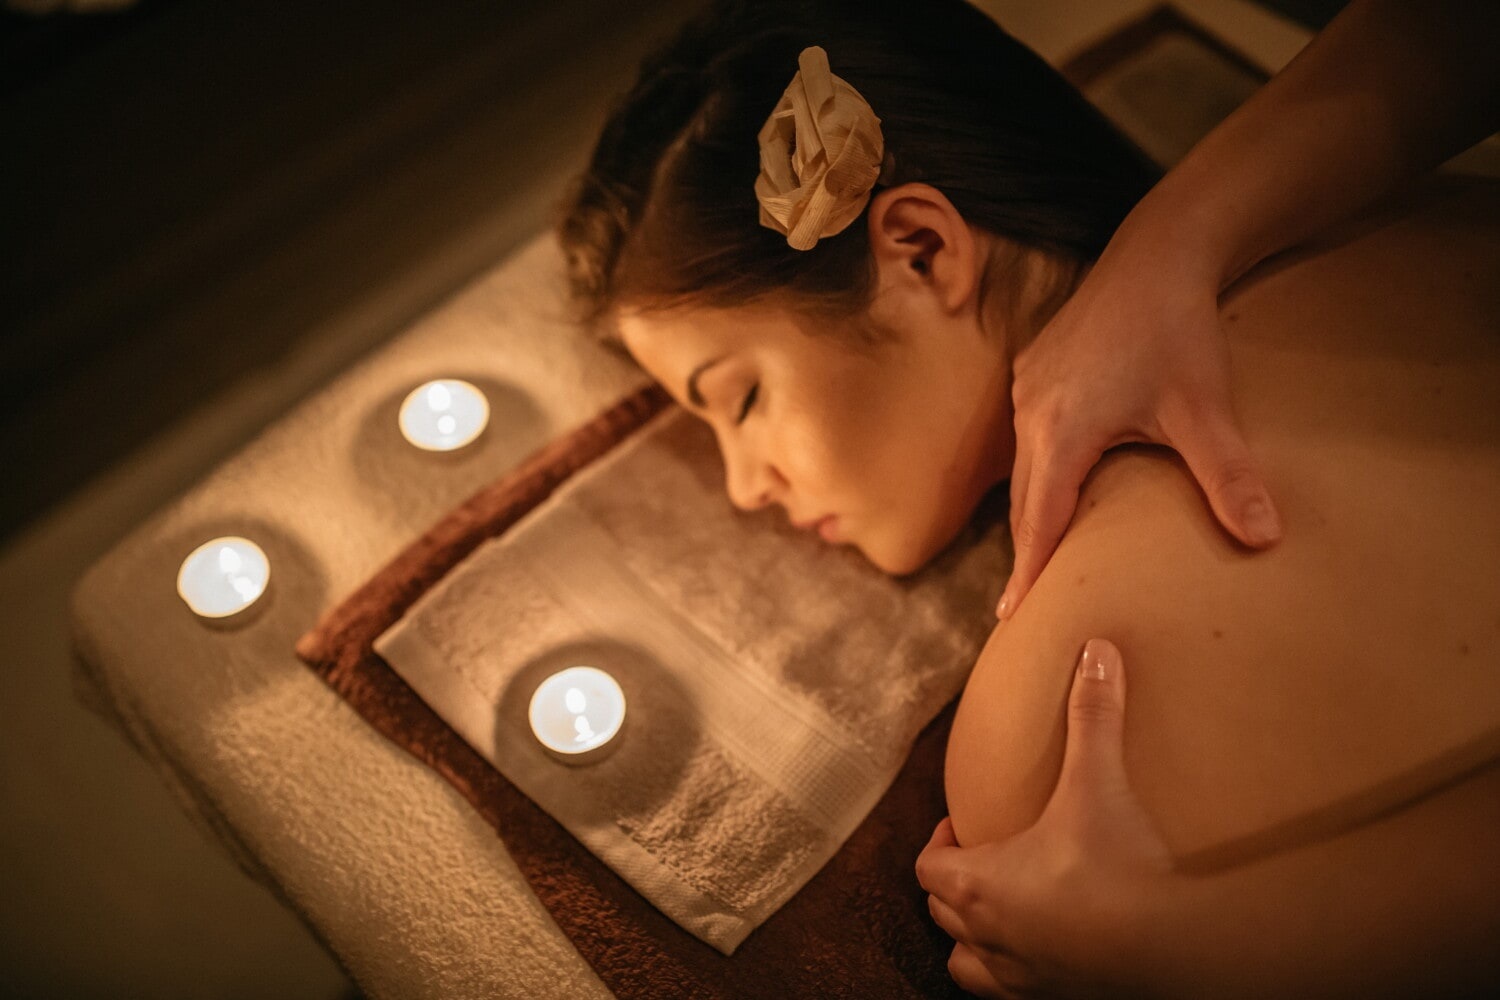 spa center, pretty girl, intimate, shoulder, massage, relaxation, candles, candlelight, lying, woman